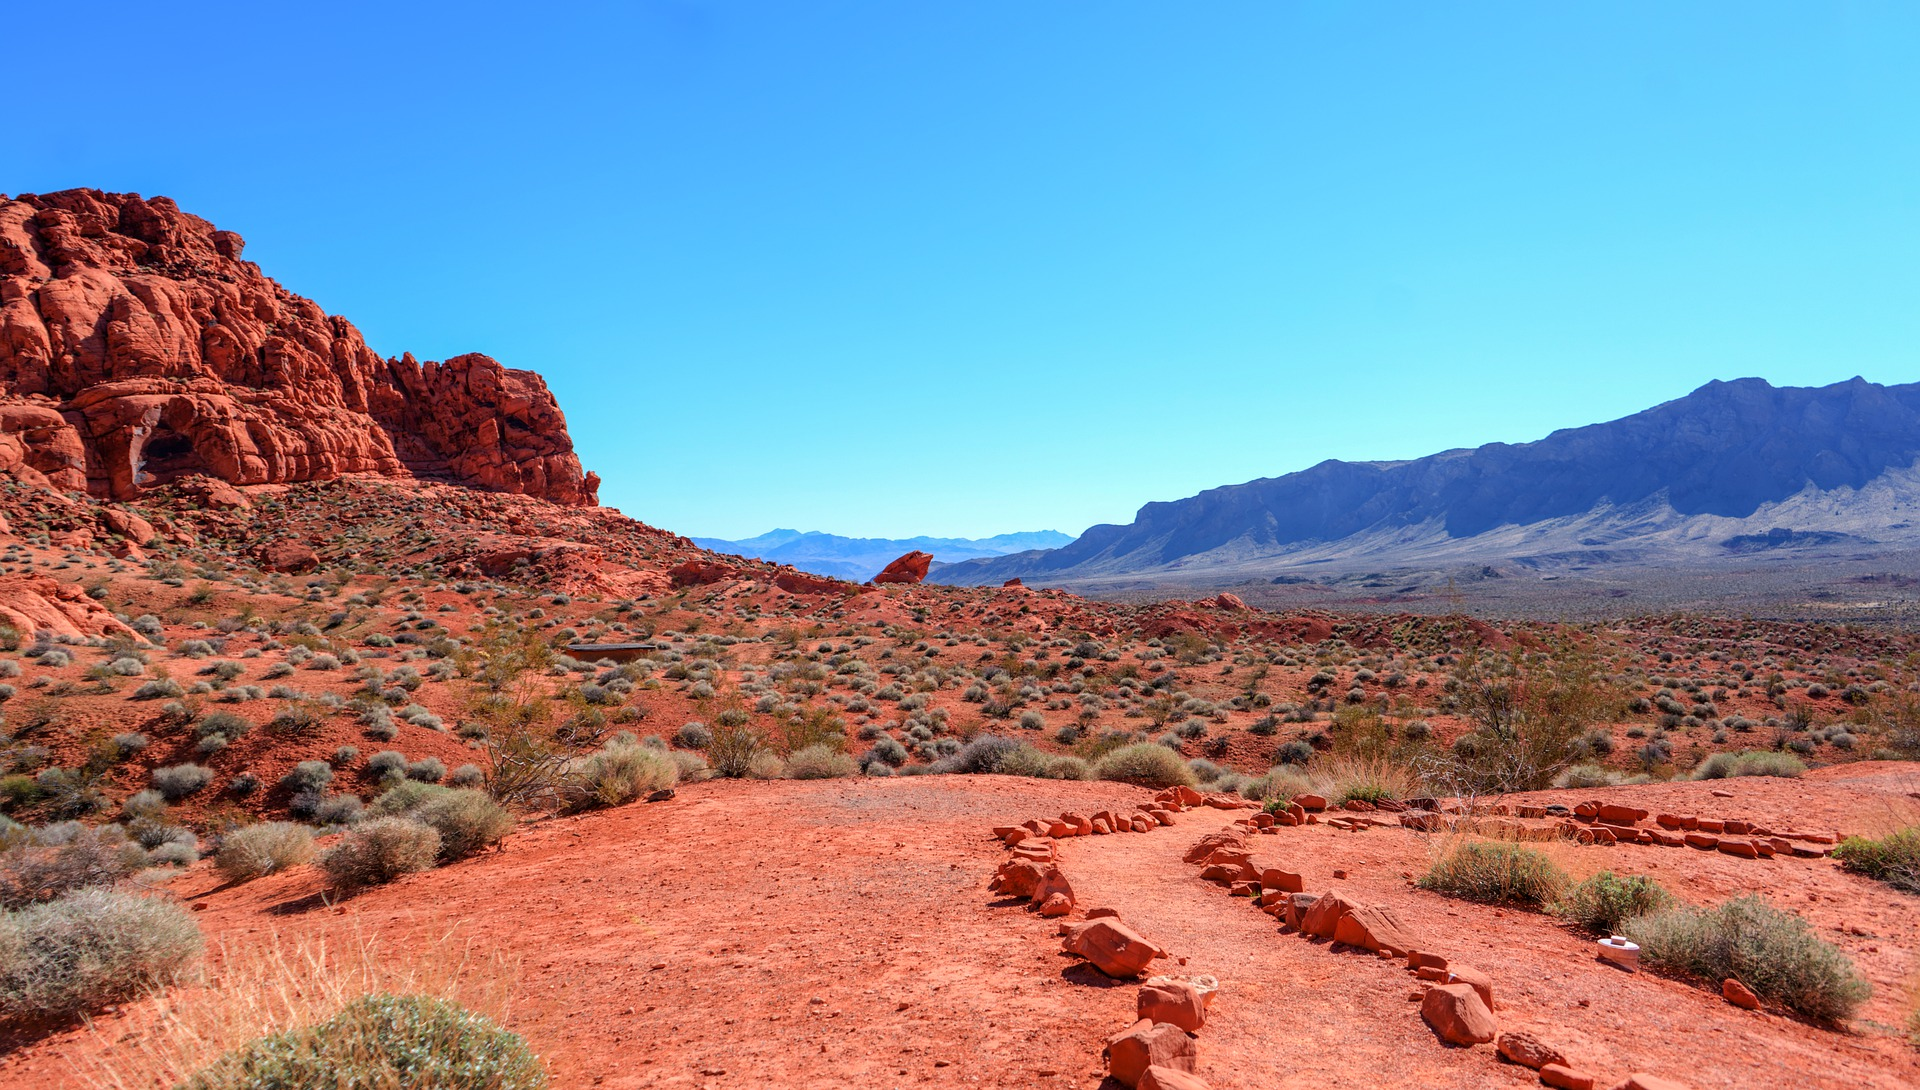 valley-of-fire-5139420_1920